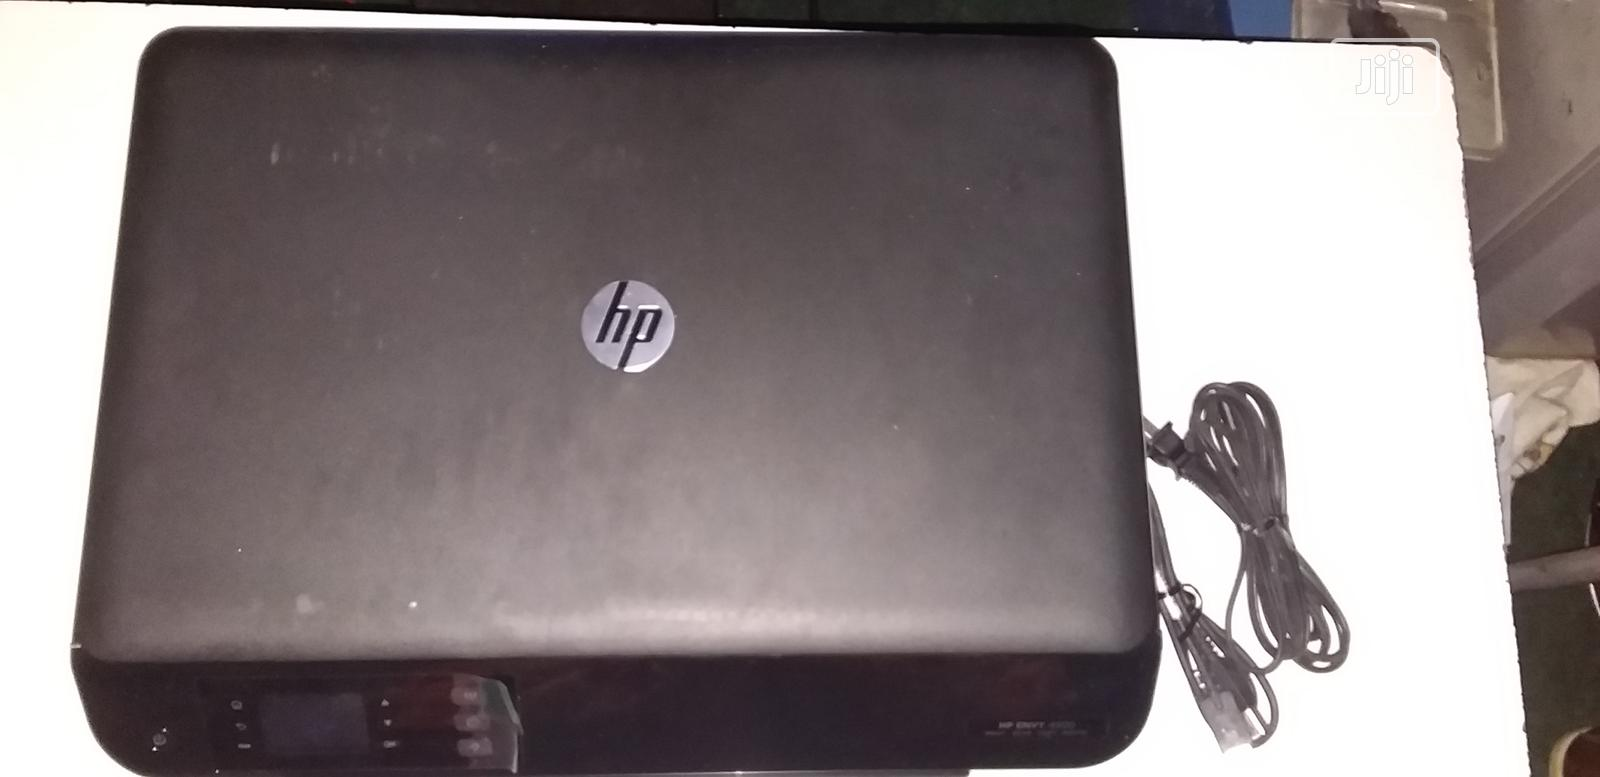 Archive: HP Envy 4500 Wireless All-in-one Color Photo Printer